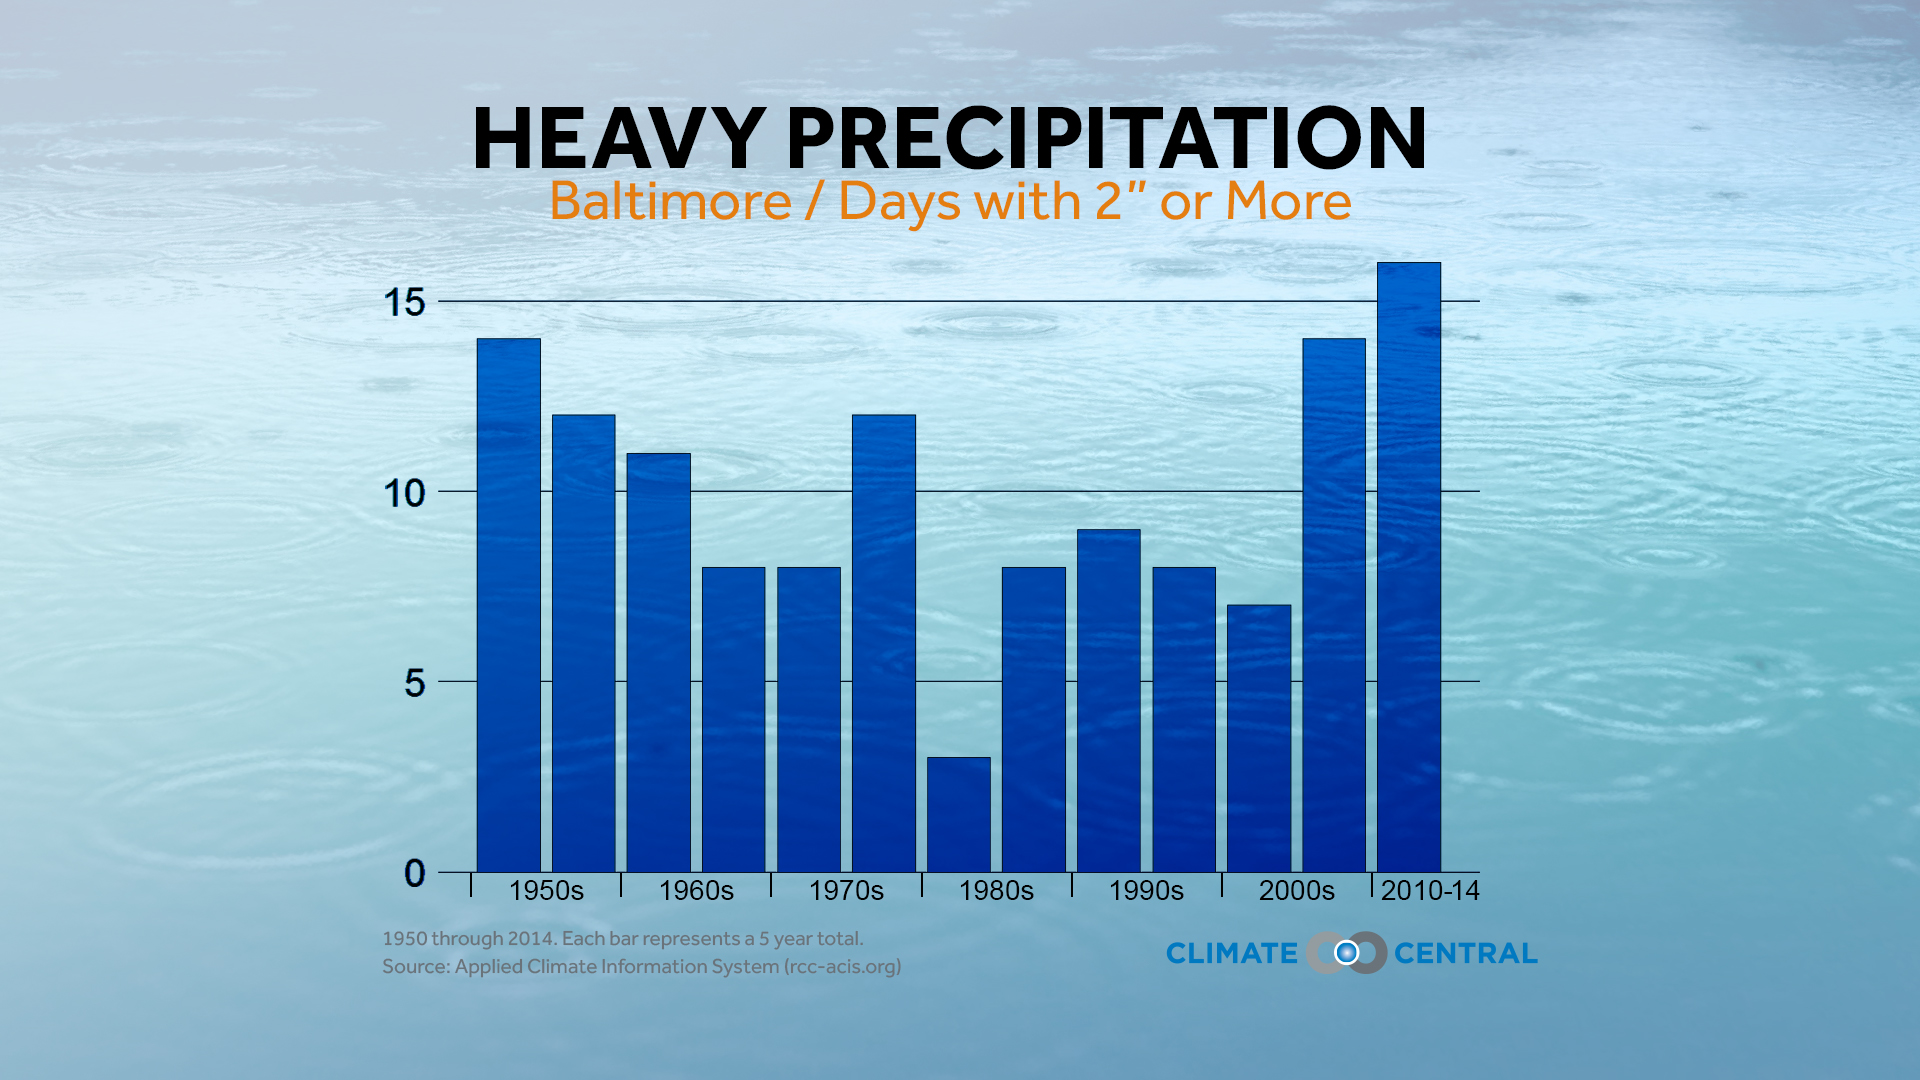 Heavy precipitation trend in Baltimore